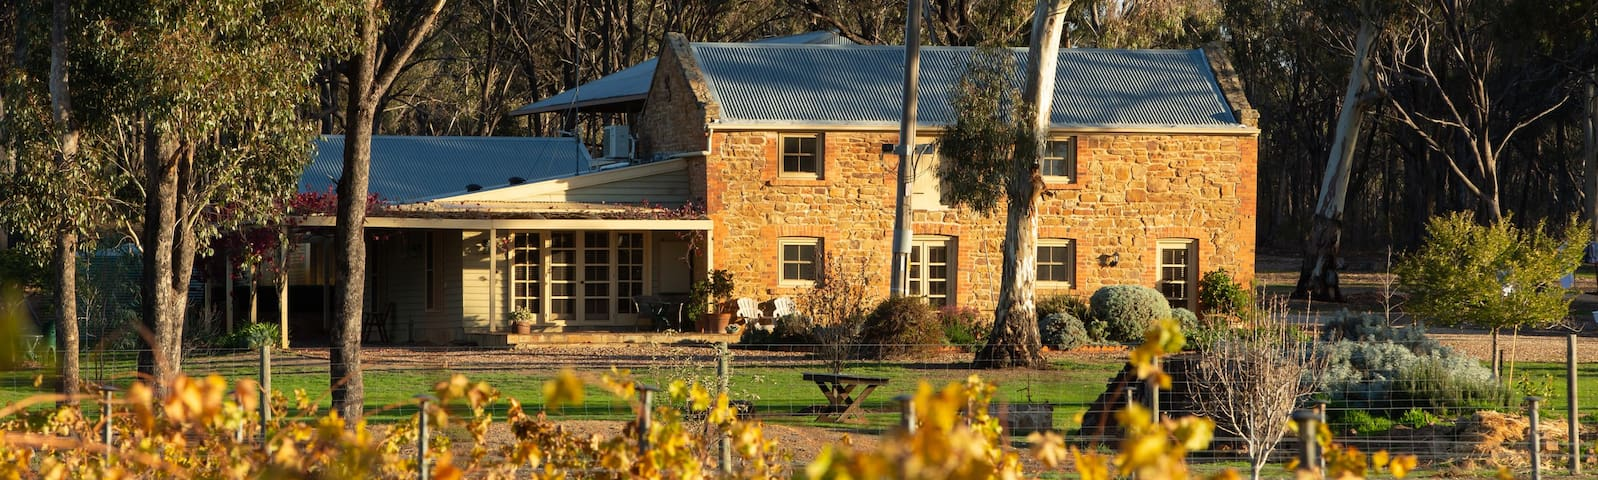 The Vines Apt: BYRONSVALE Vineyard & Accommodation